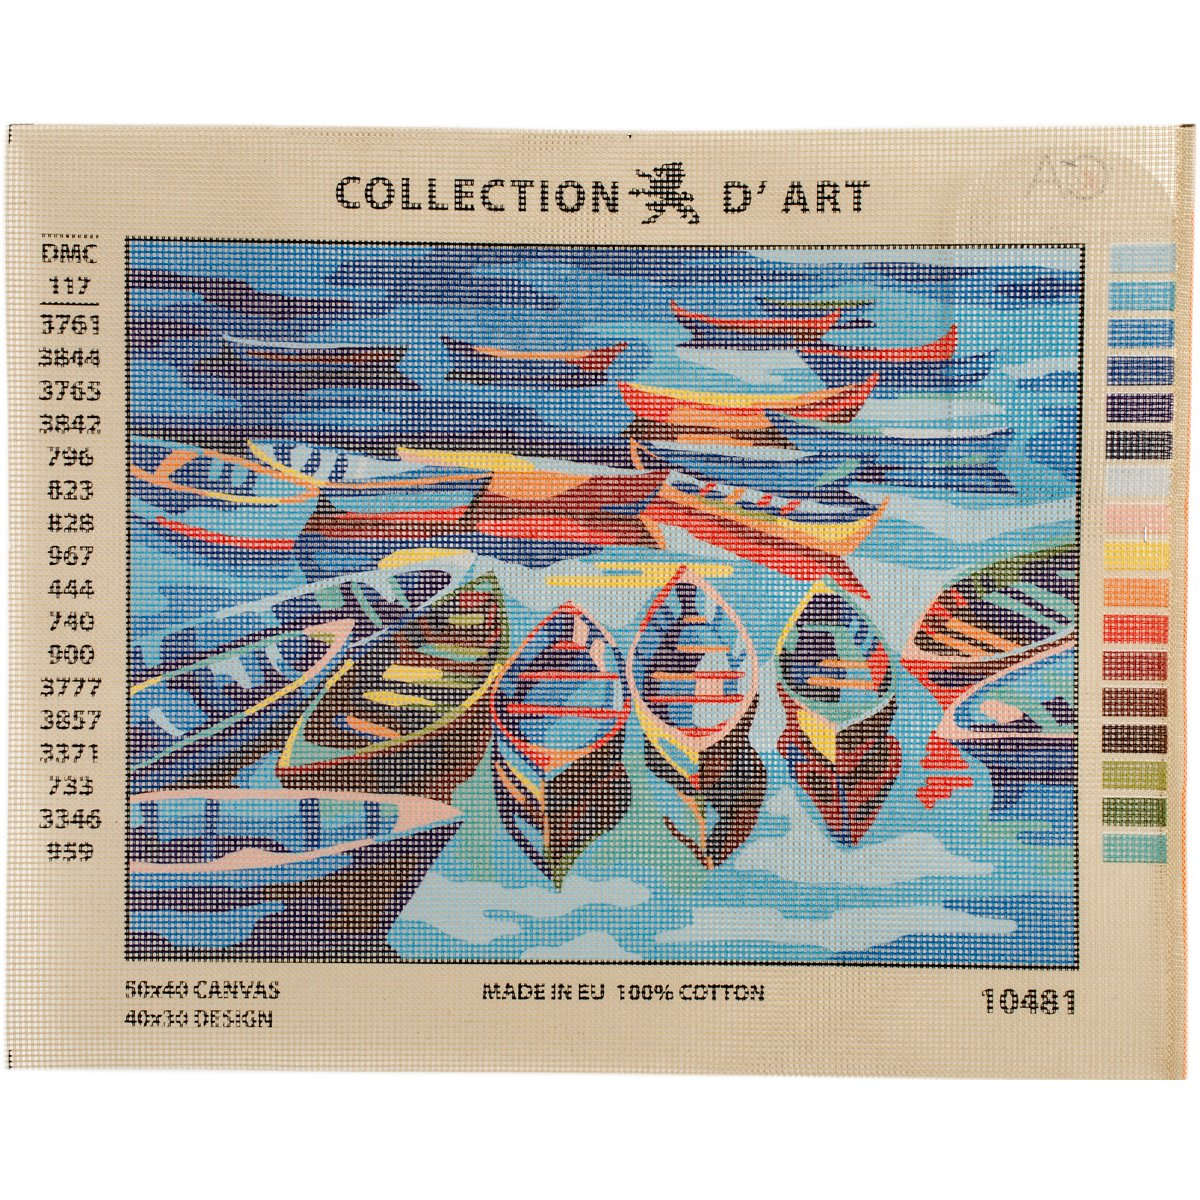 RTO Boats D'Art Needlepoint Printed Tapestry Canvas, 40 x 50cm 10481